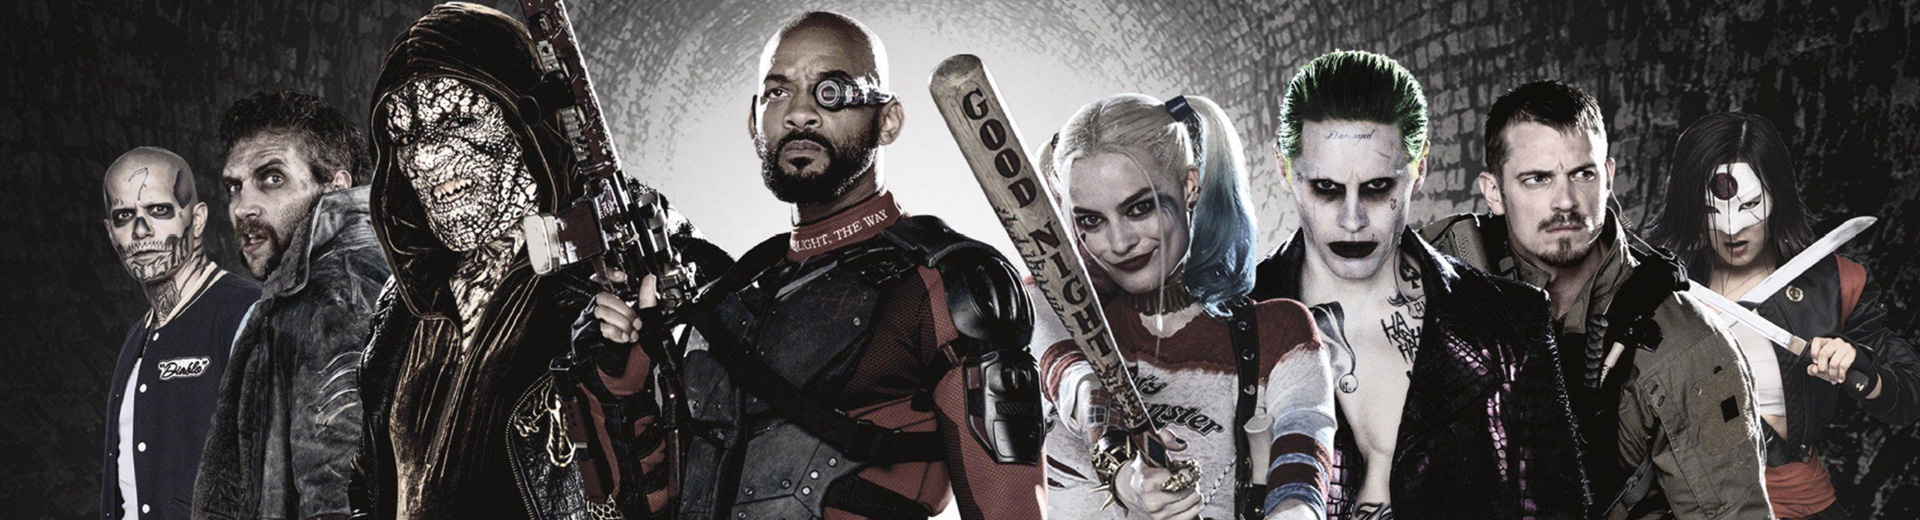 Who's who in Suicide Squad?